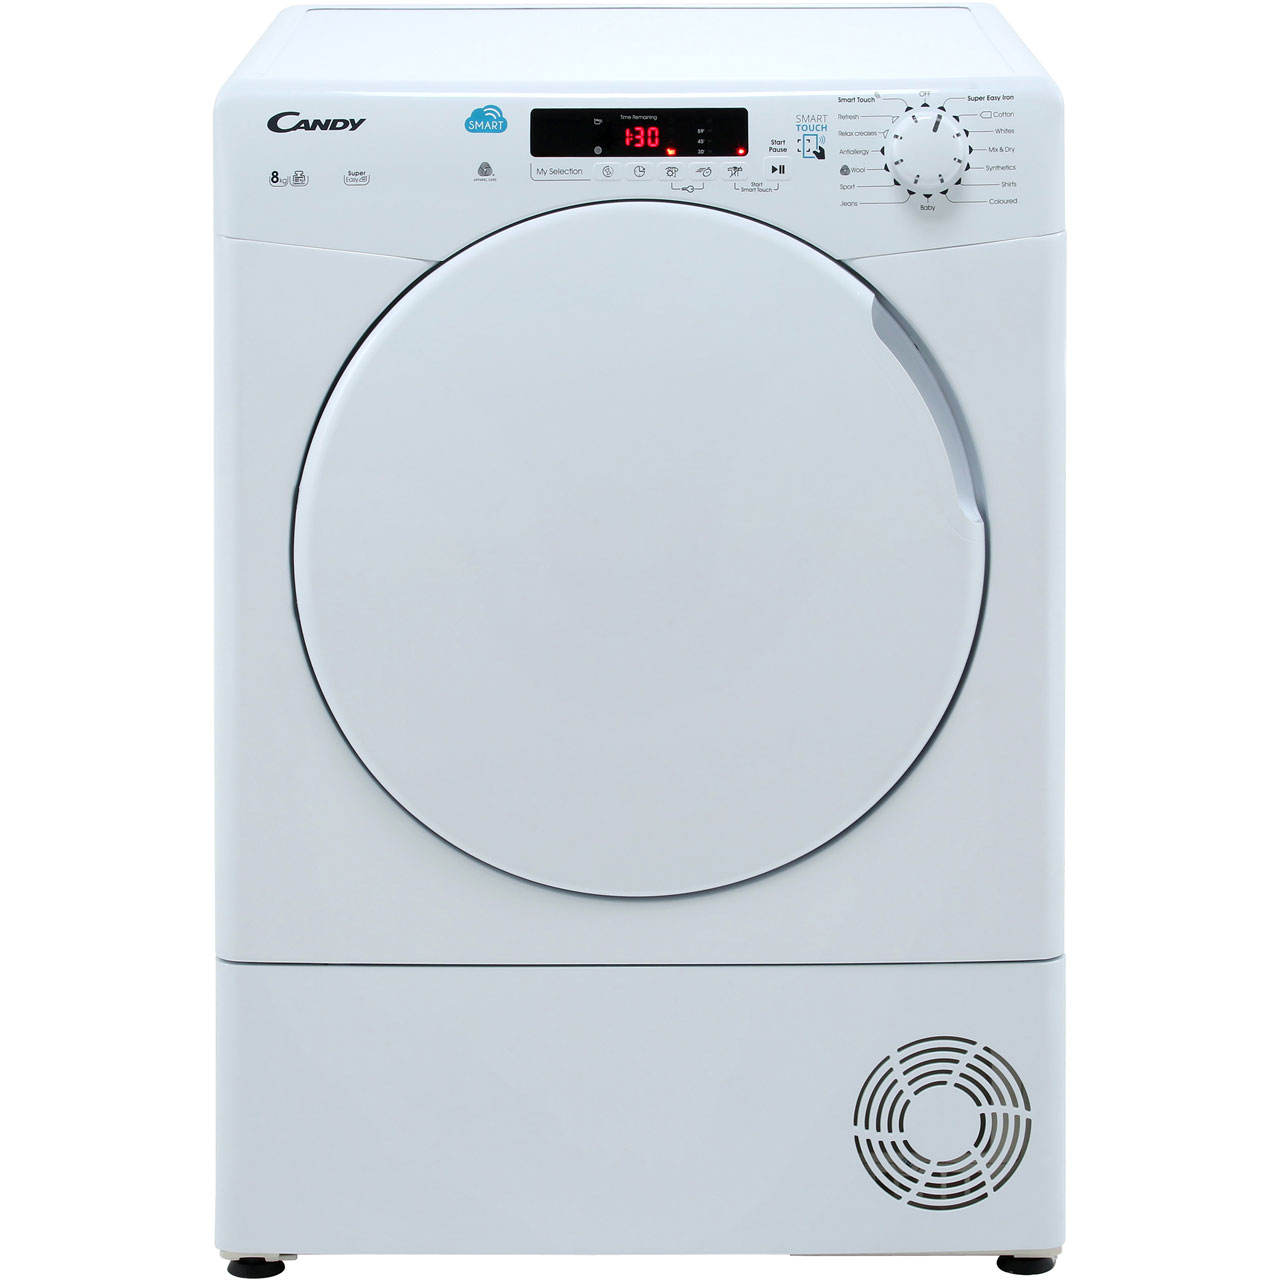 Candy Smart 8Kg Condenser Tumble Dryer - White - B Rated